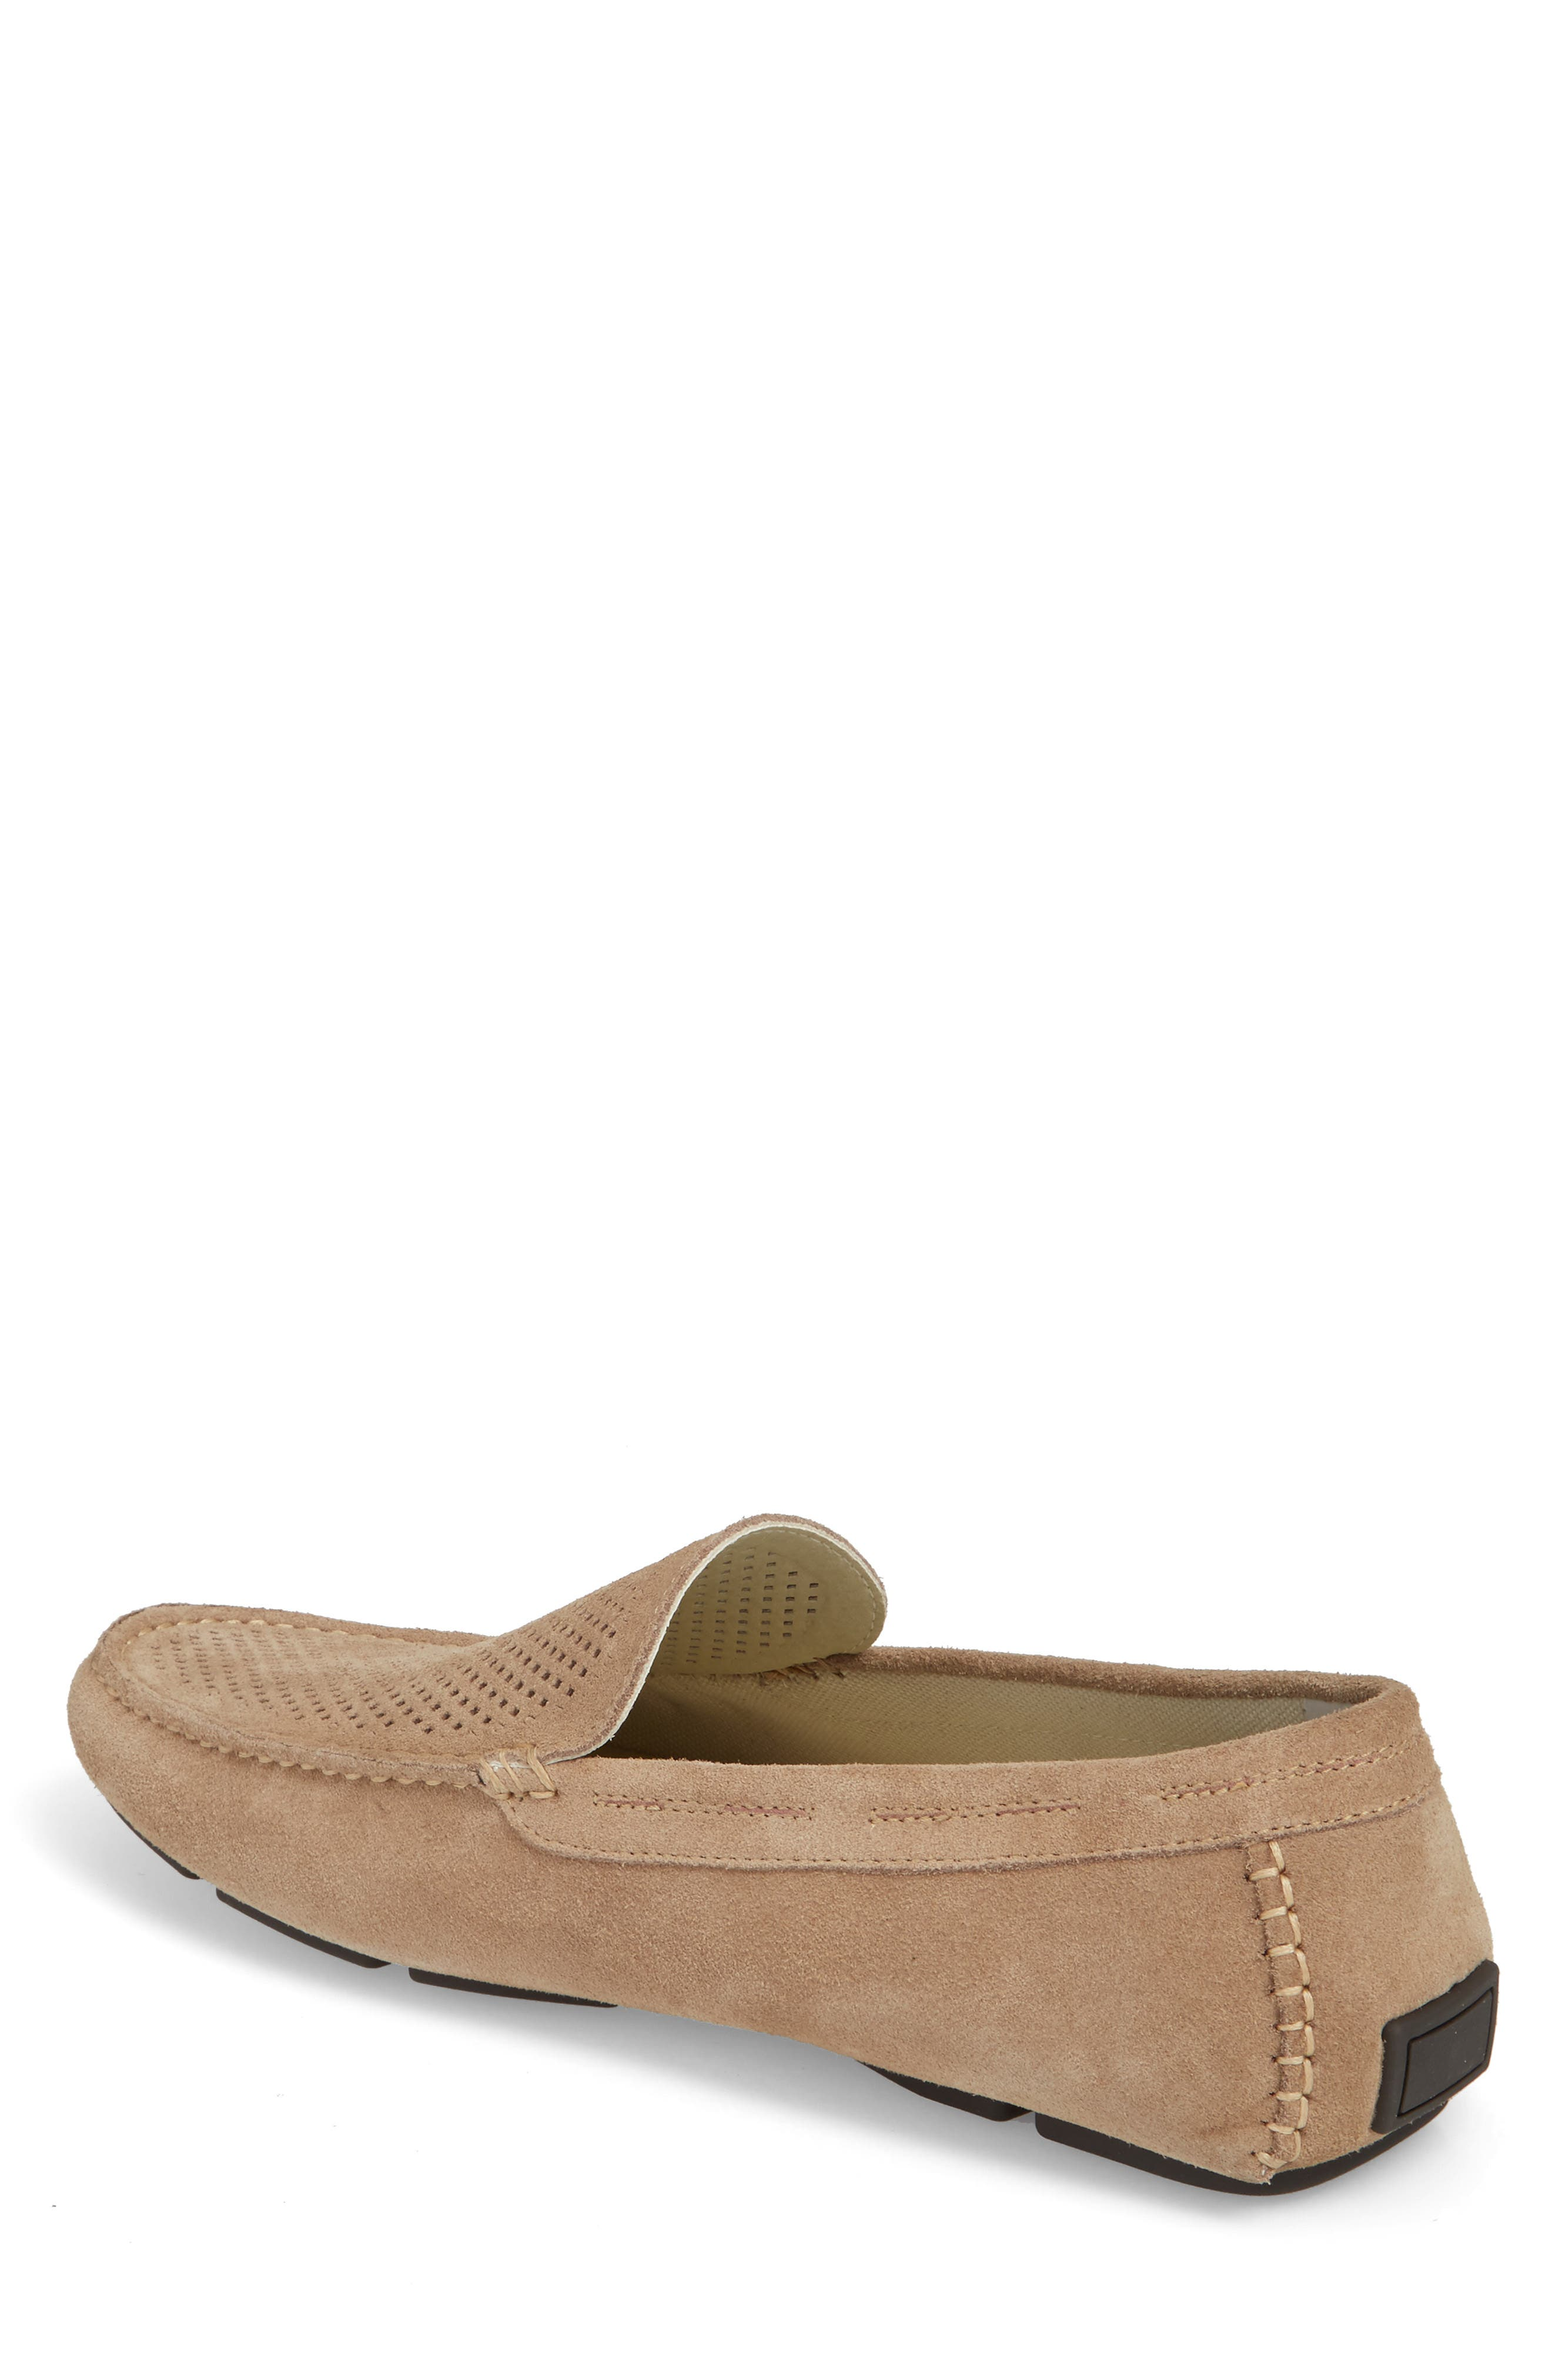 Scottsdale Perforated Driving Moccasin,                             Alternate thumbnail 2, color,                             Tan Suede